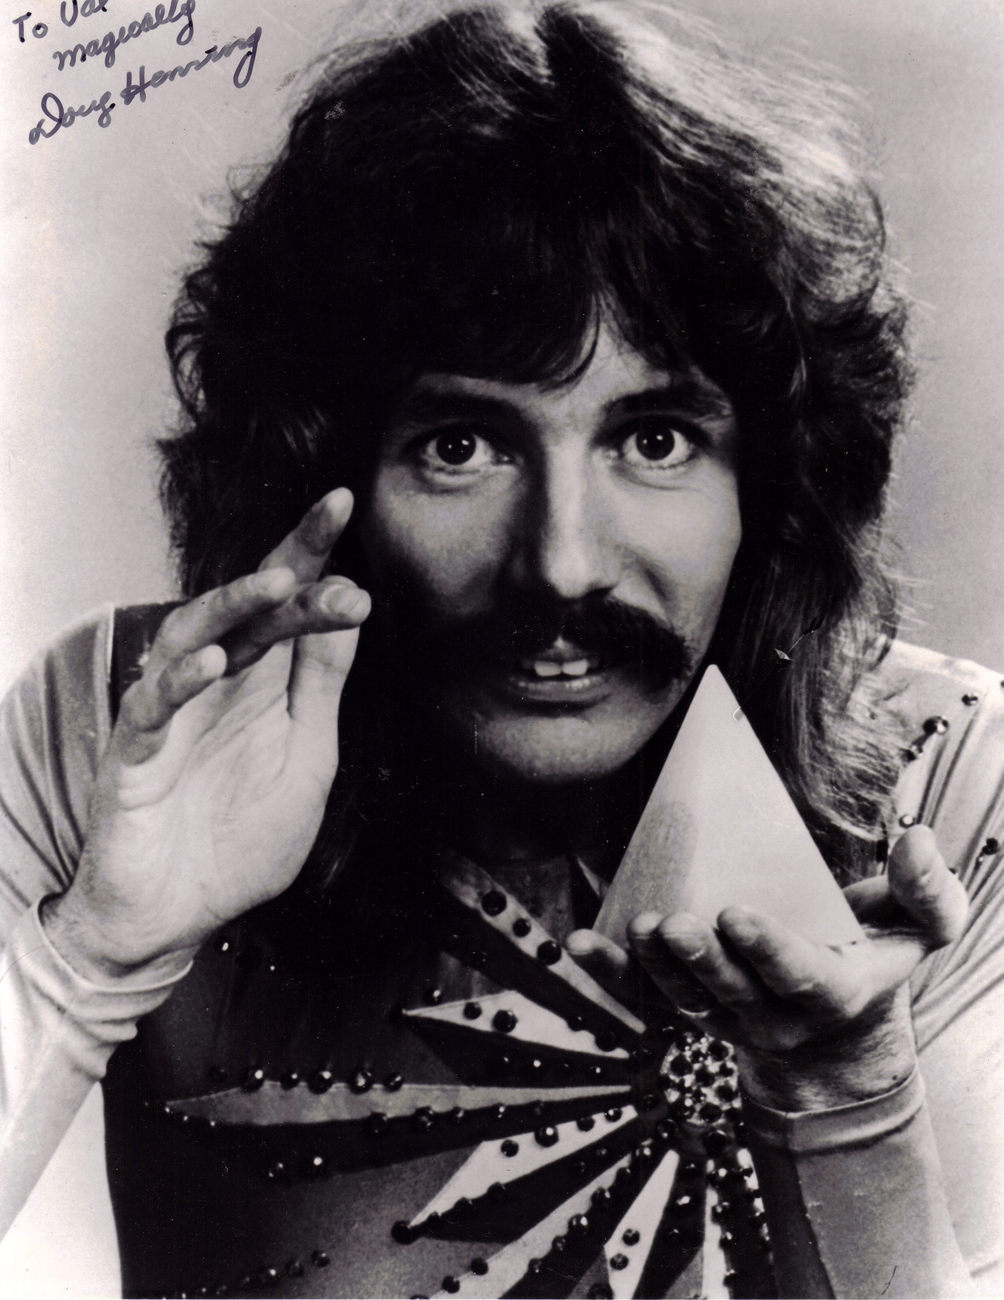 DOUG HENNING Signed Photograph BampW Theater